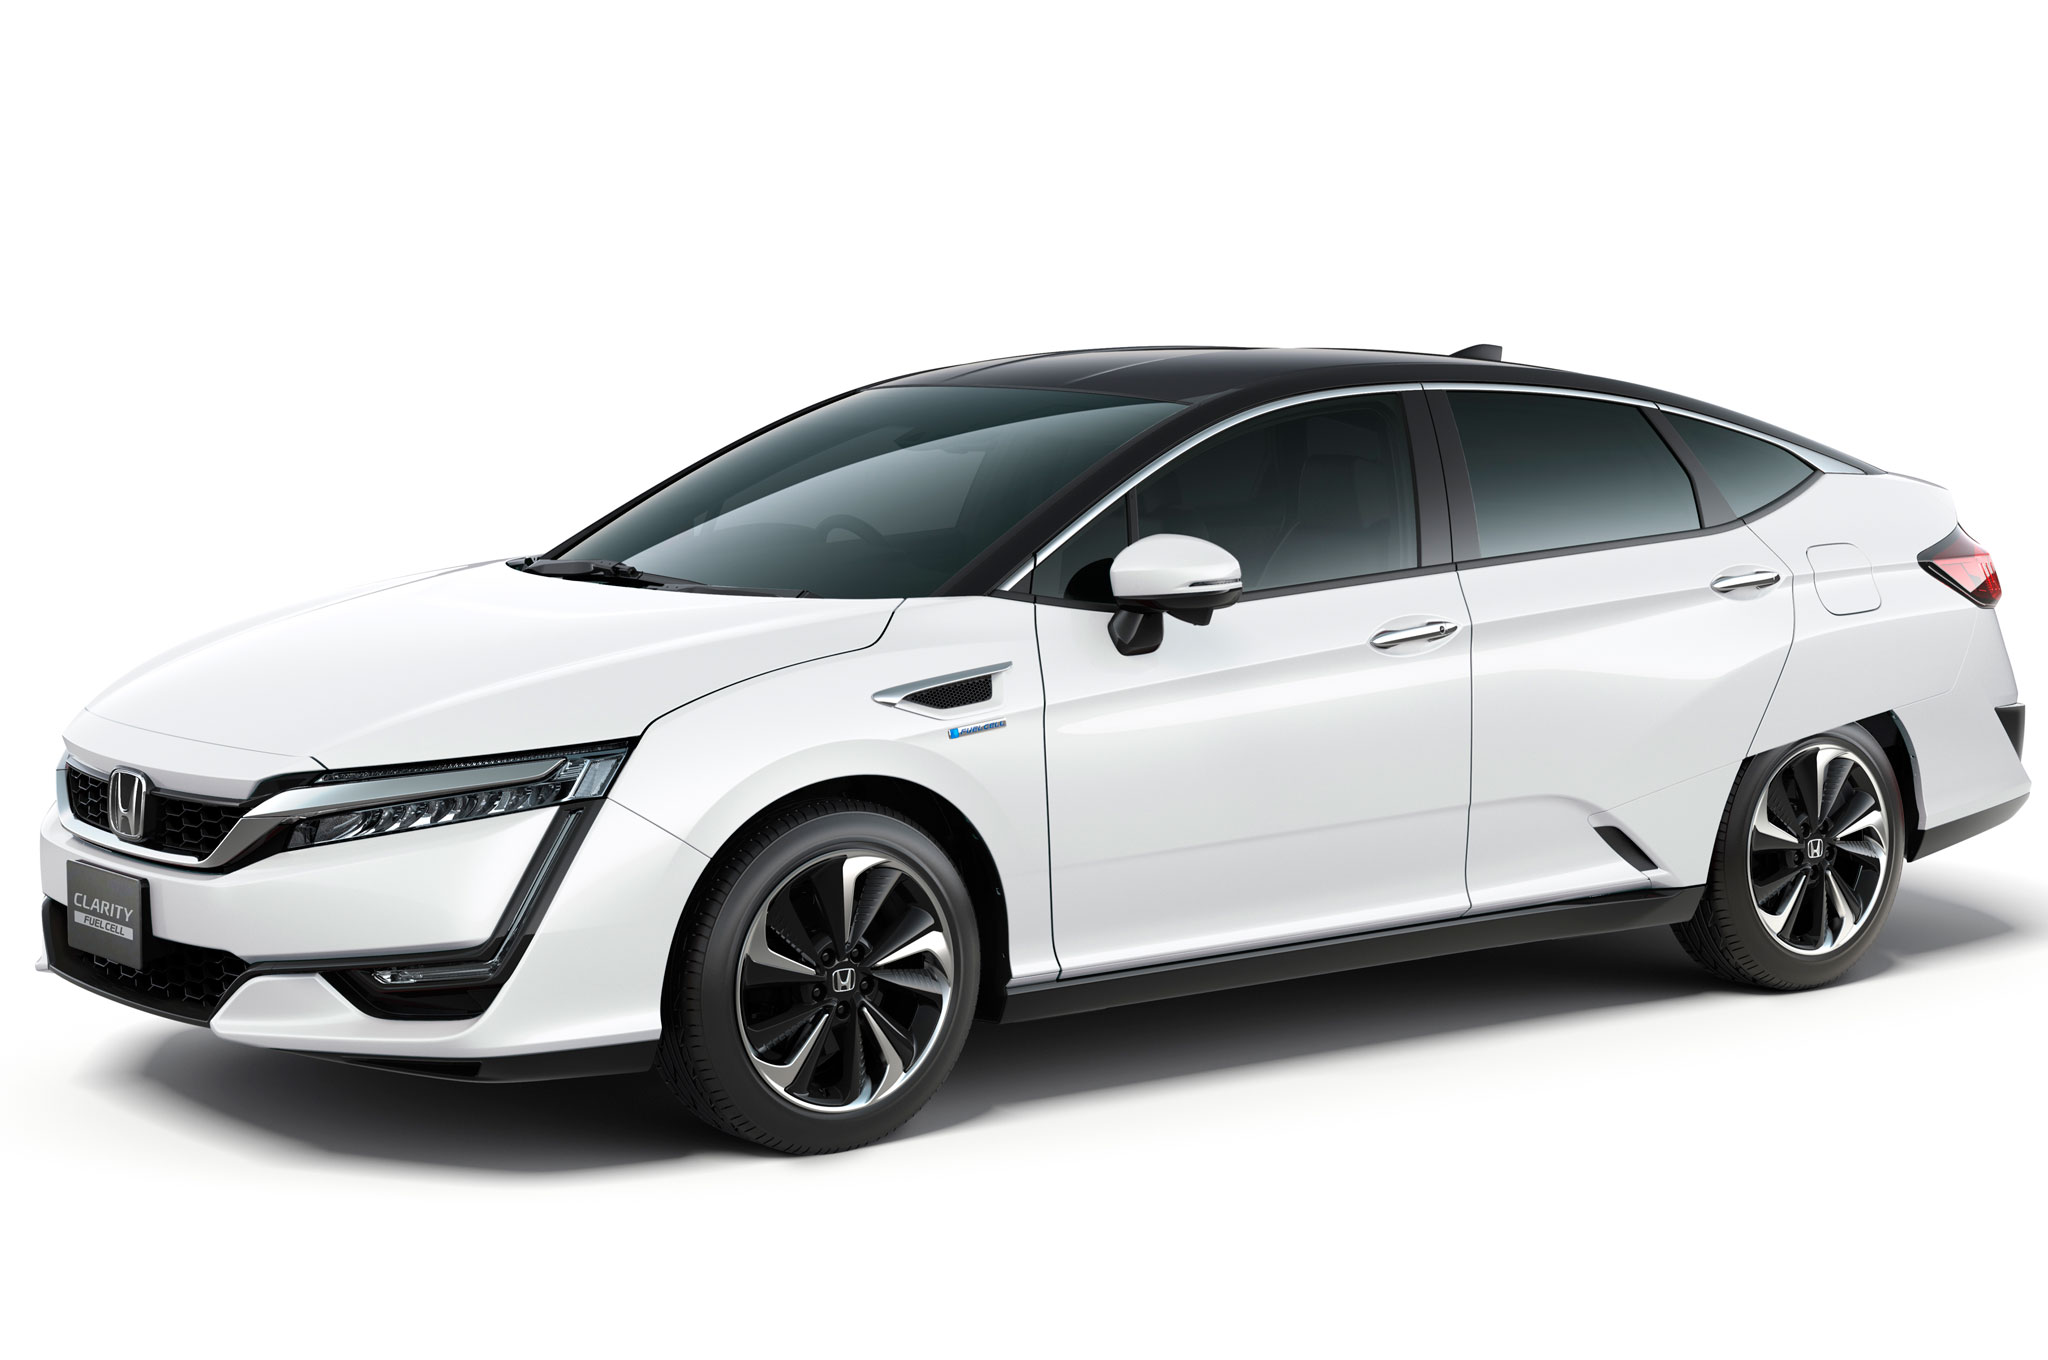 2017 honda fuel cell electric vehicles hit the southern california roads spewing water vapor as. Black Bedroom Furniture Sets. Home Design Ideas